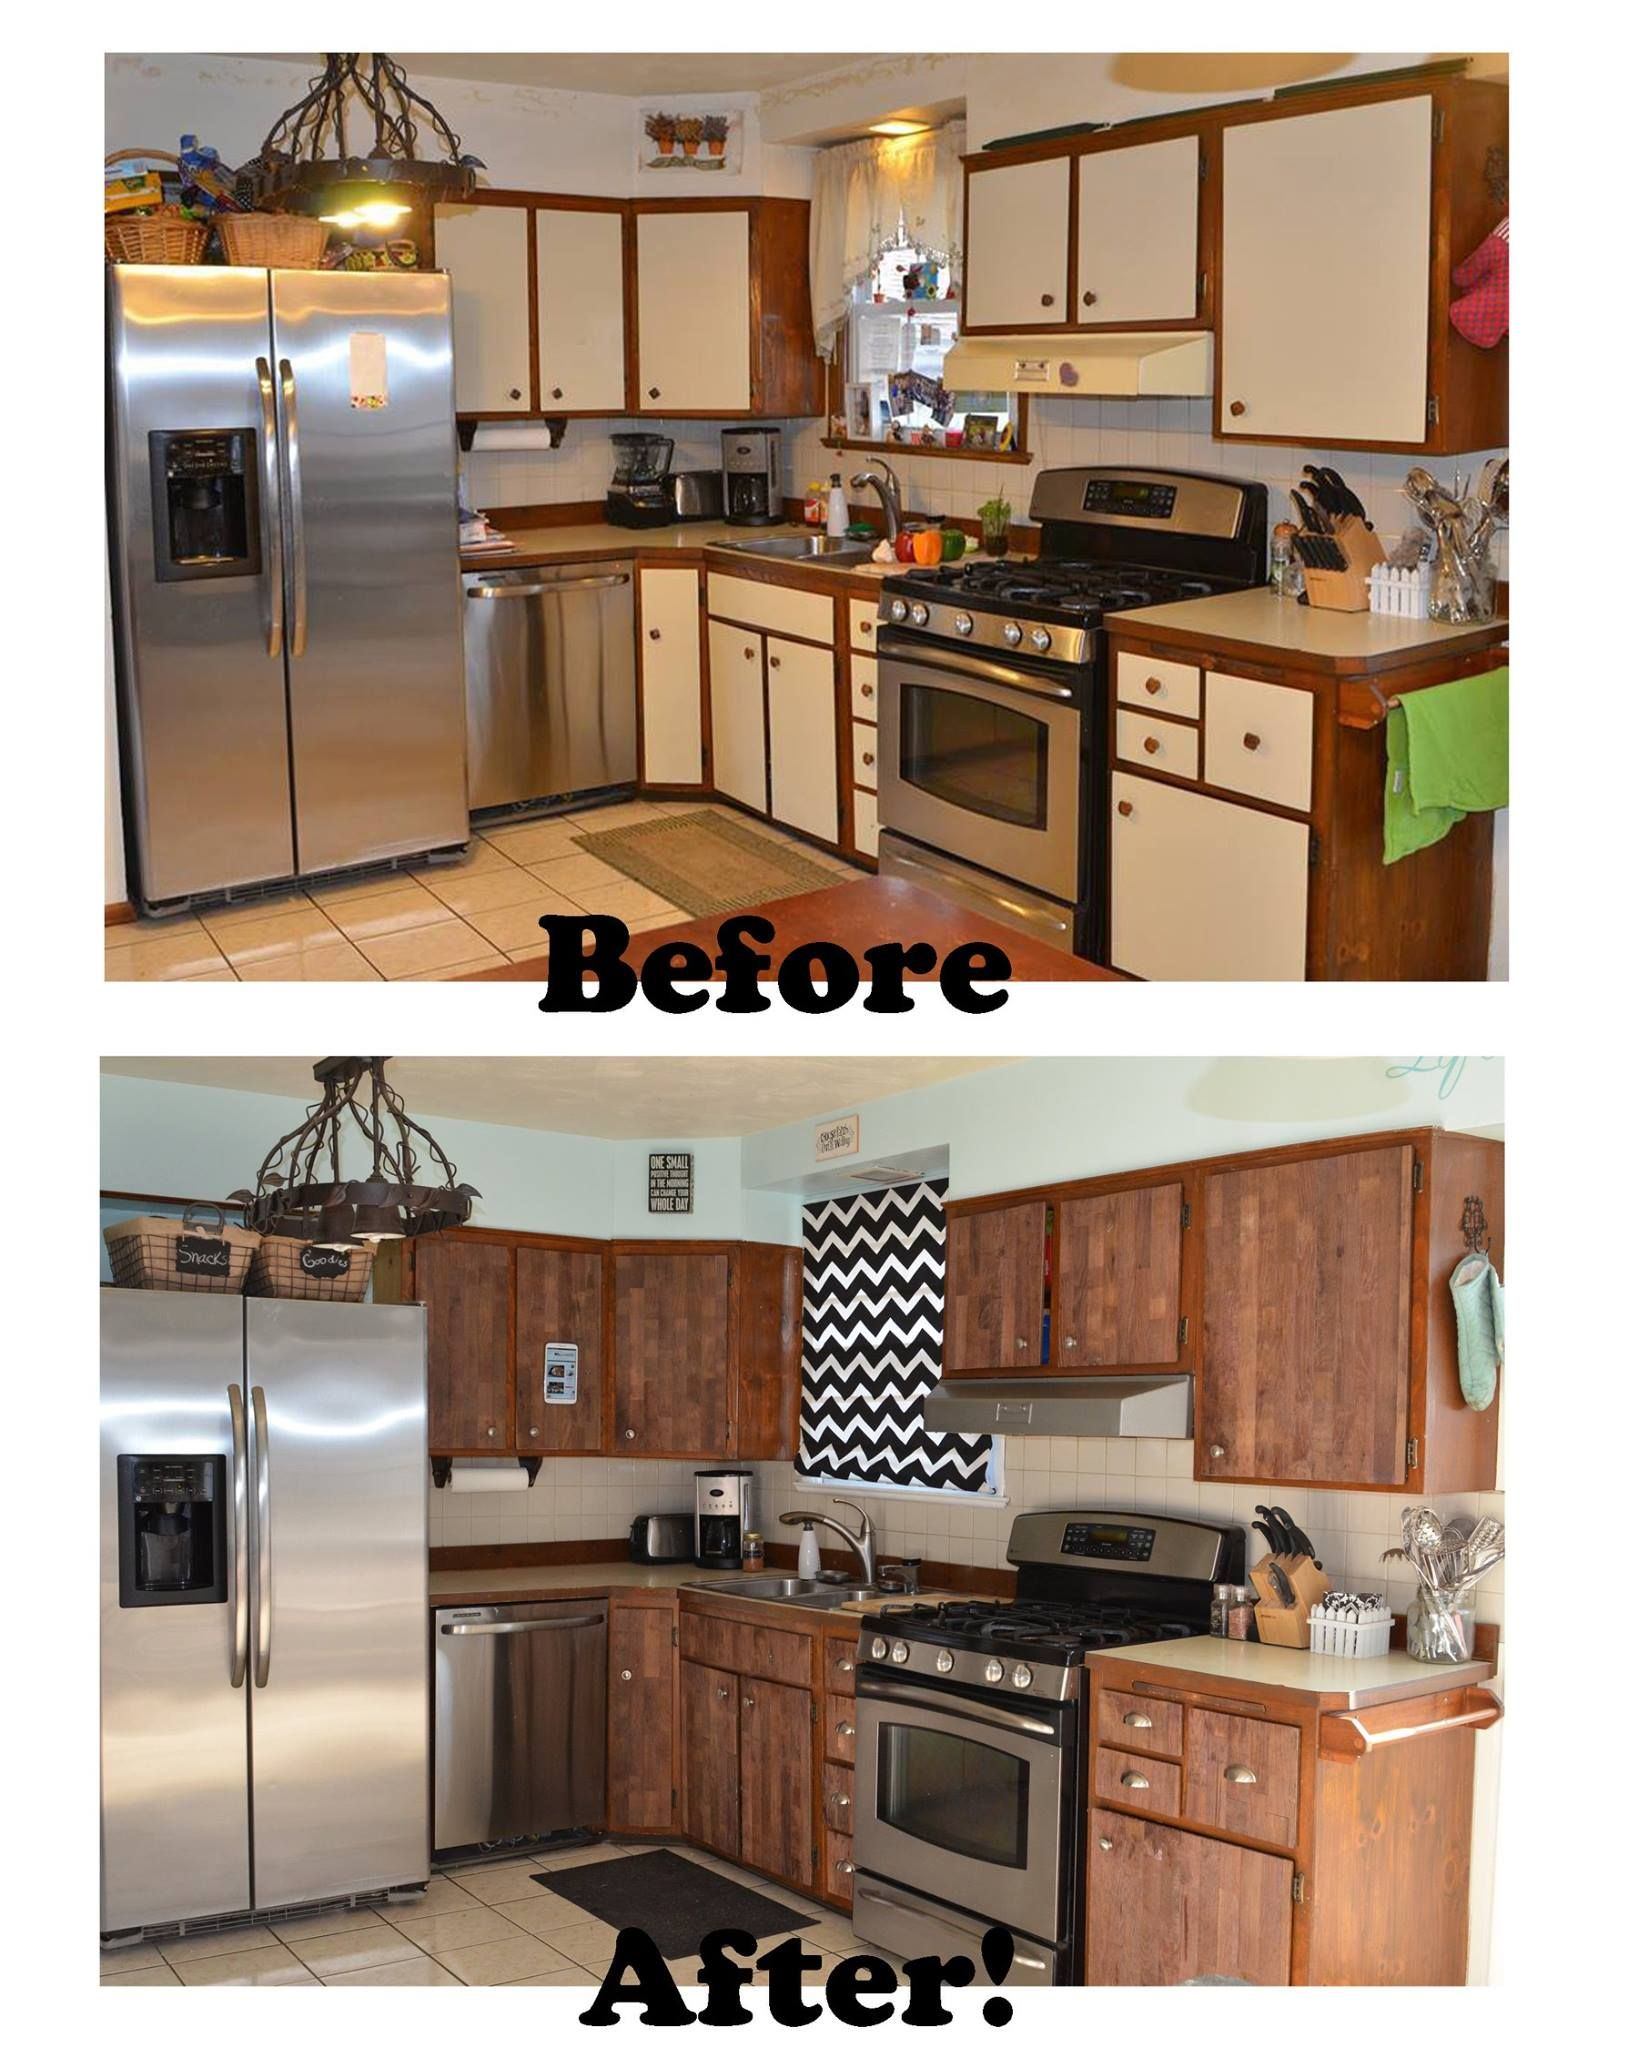 Kitchen Makeovers On A Budget Before And After stikwood before and after kitchen makeover! ugly laminate kitchen